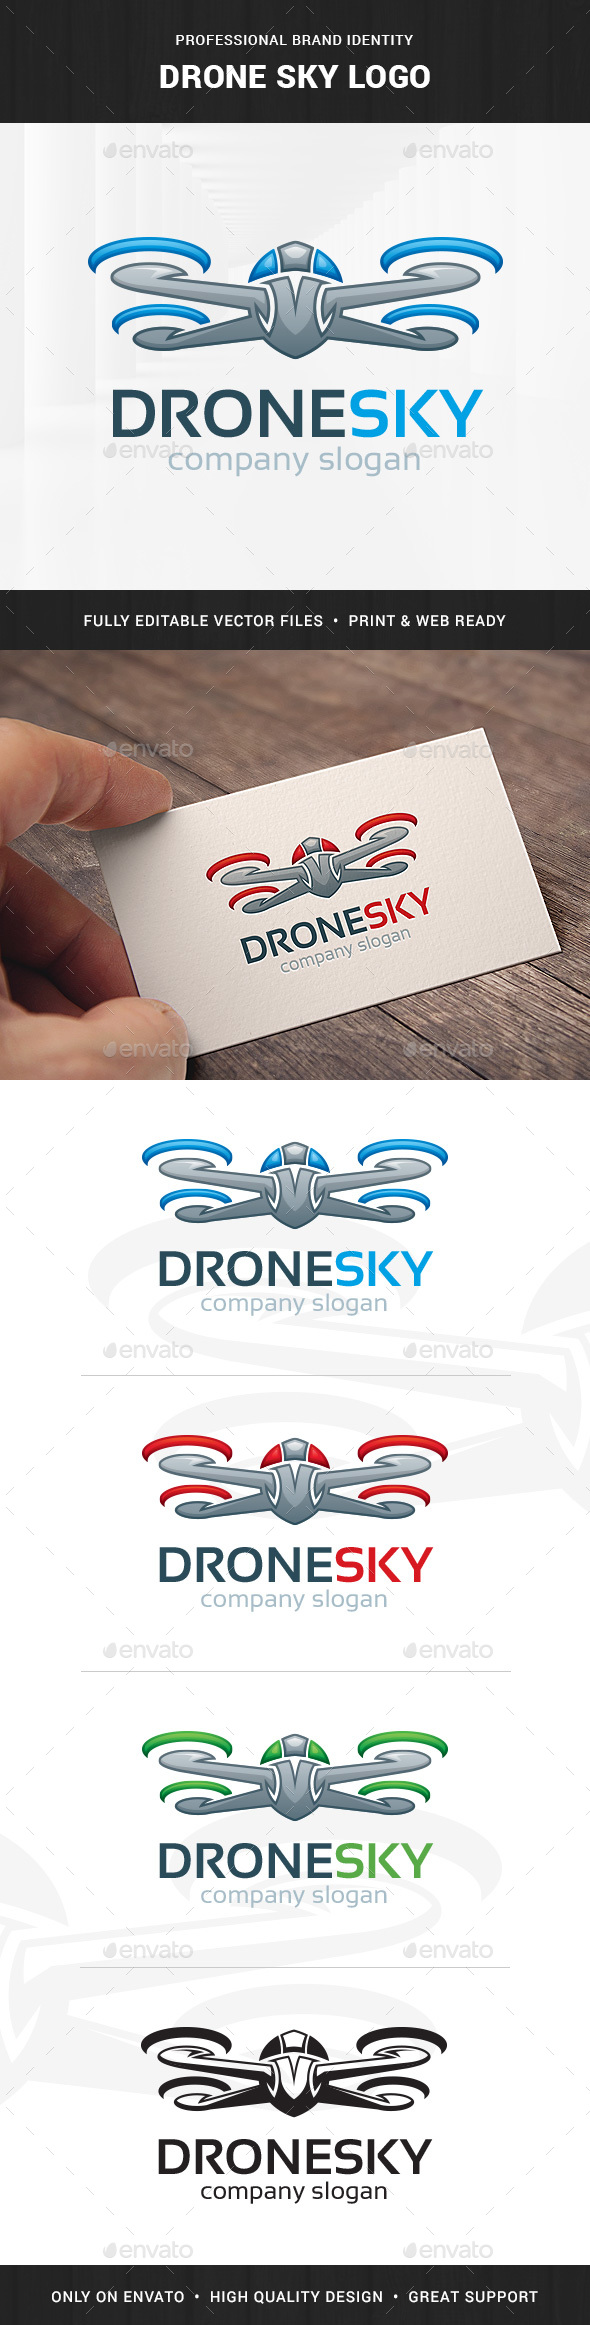 Drone Sky Logo Template - Objects Logo Templates